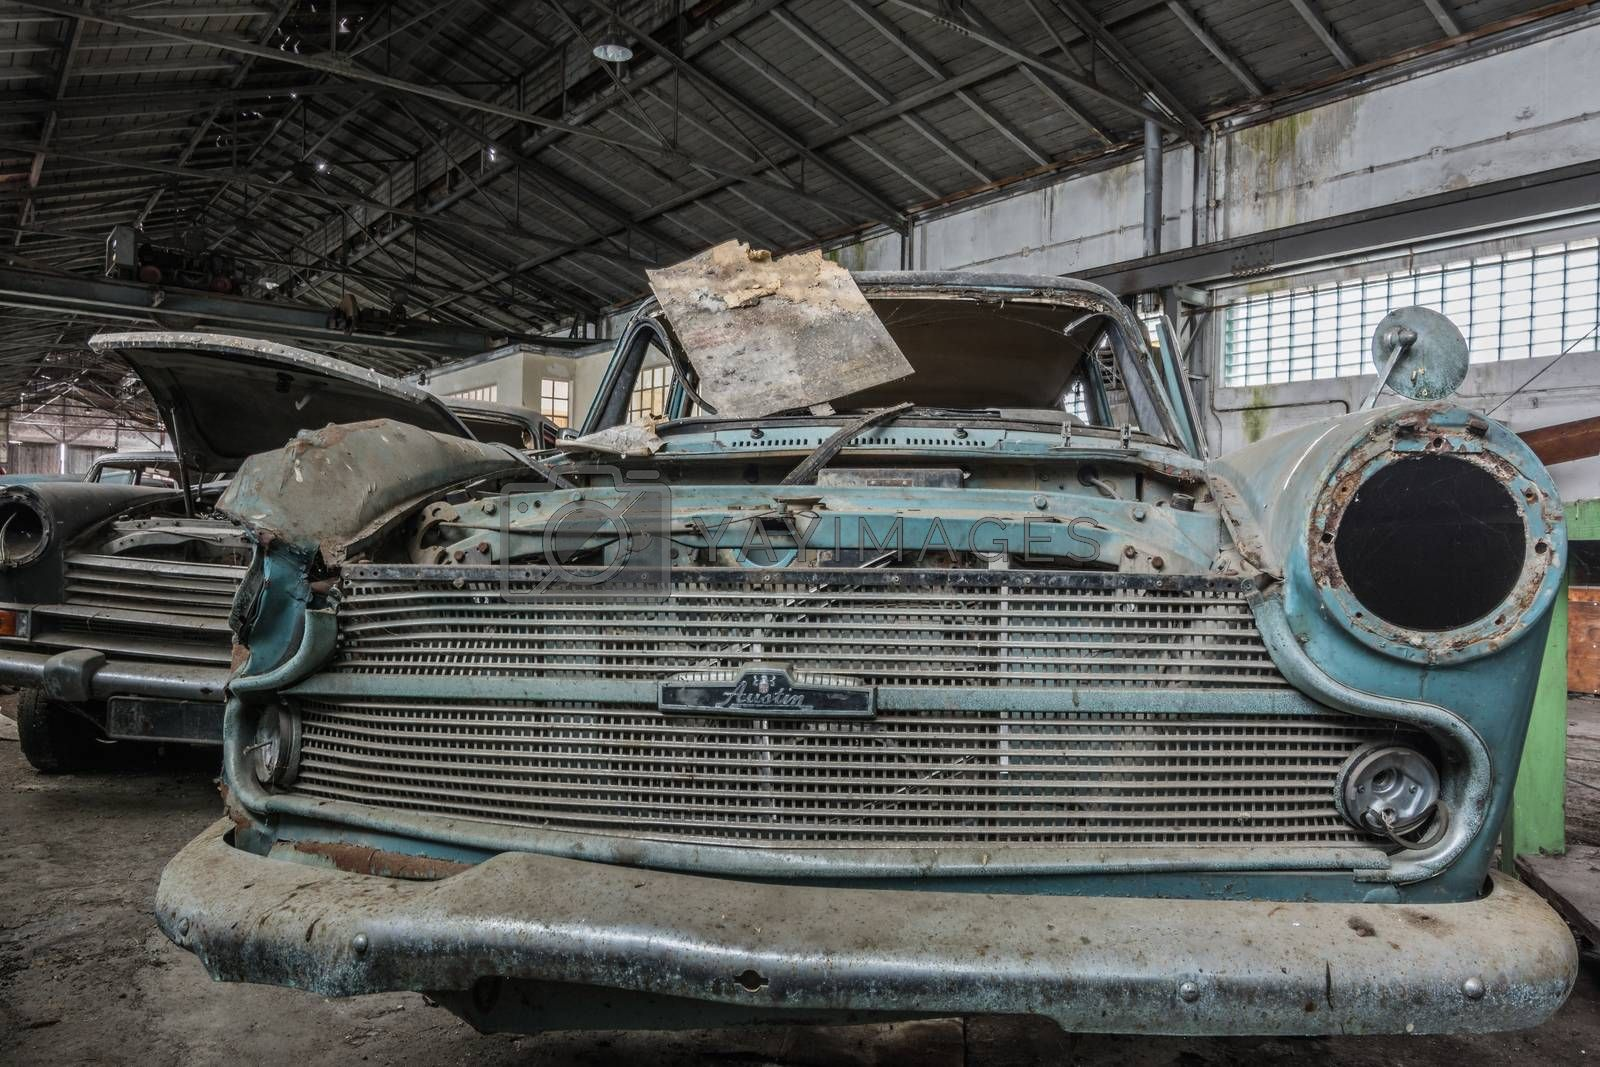 Old Morris Oxford front view in an abandoned car repair shop